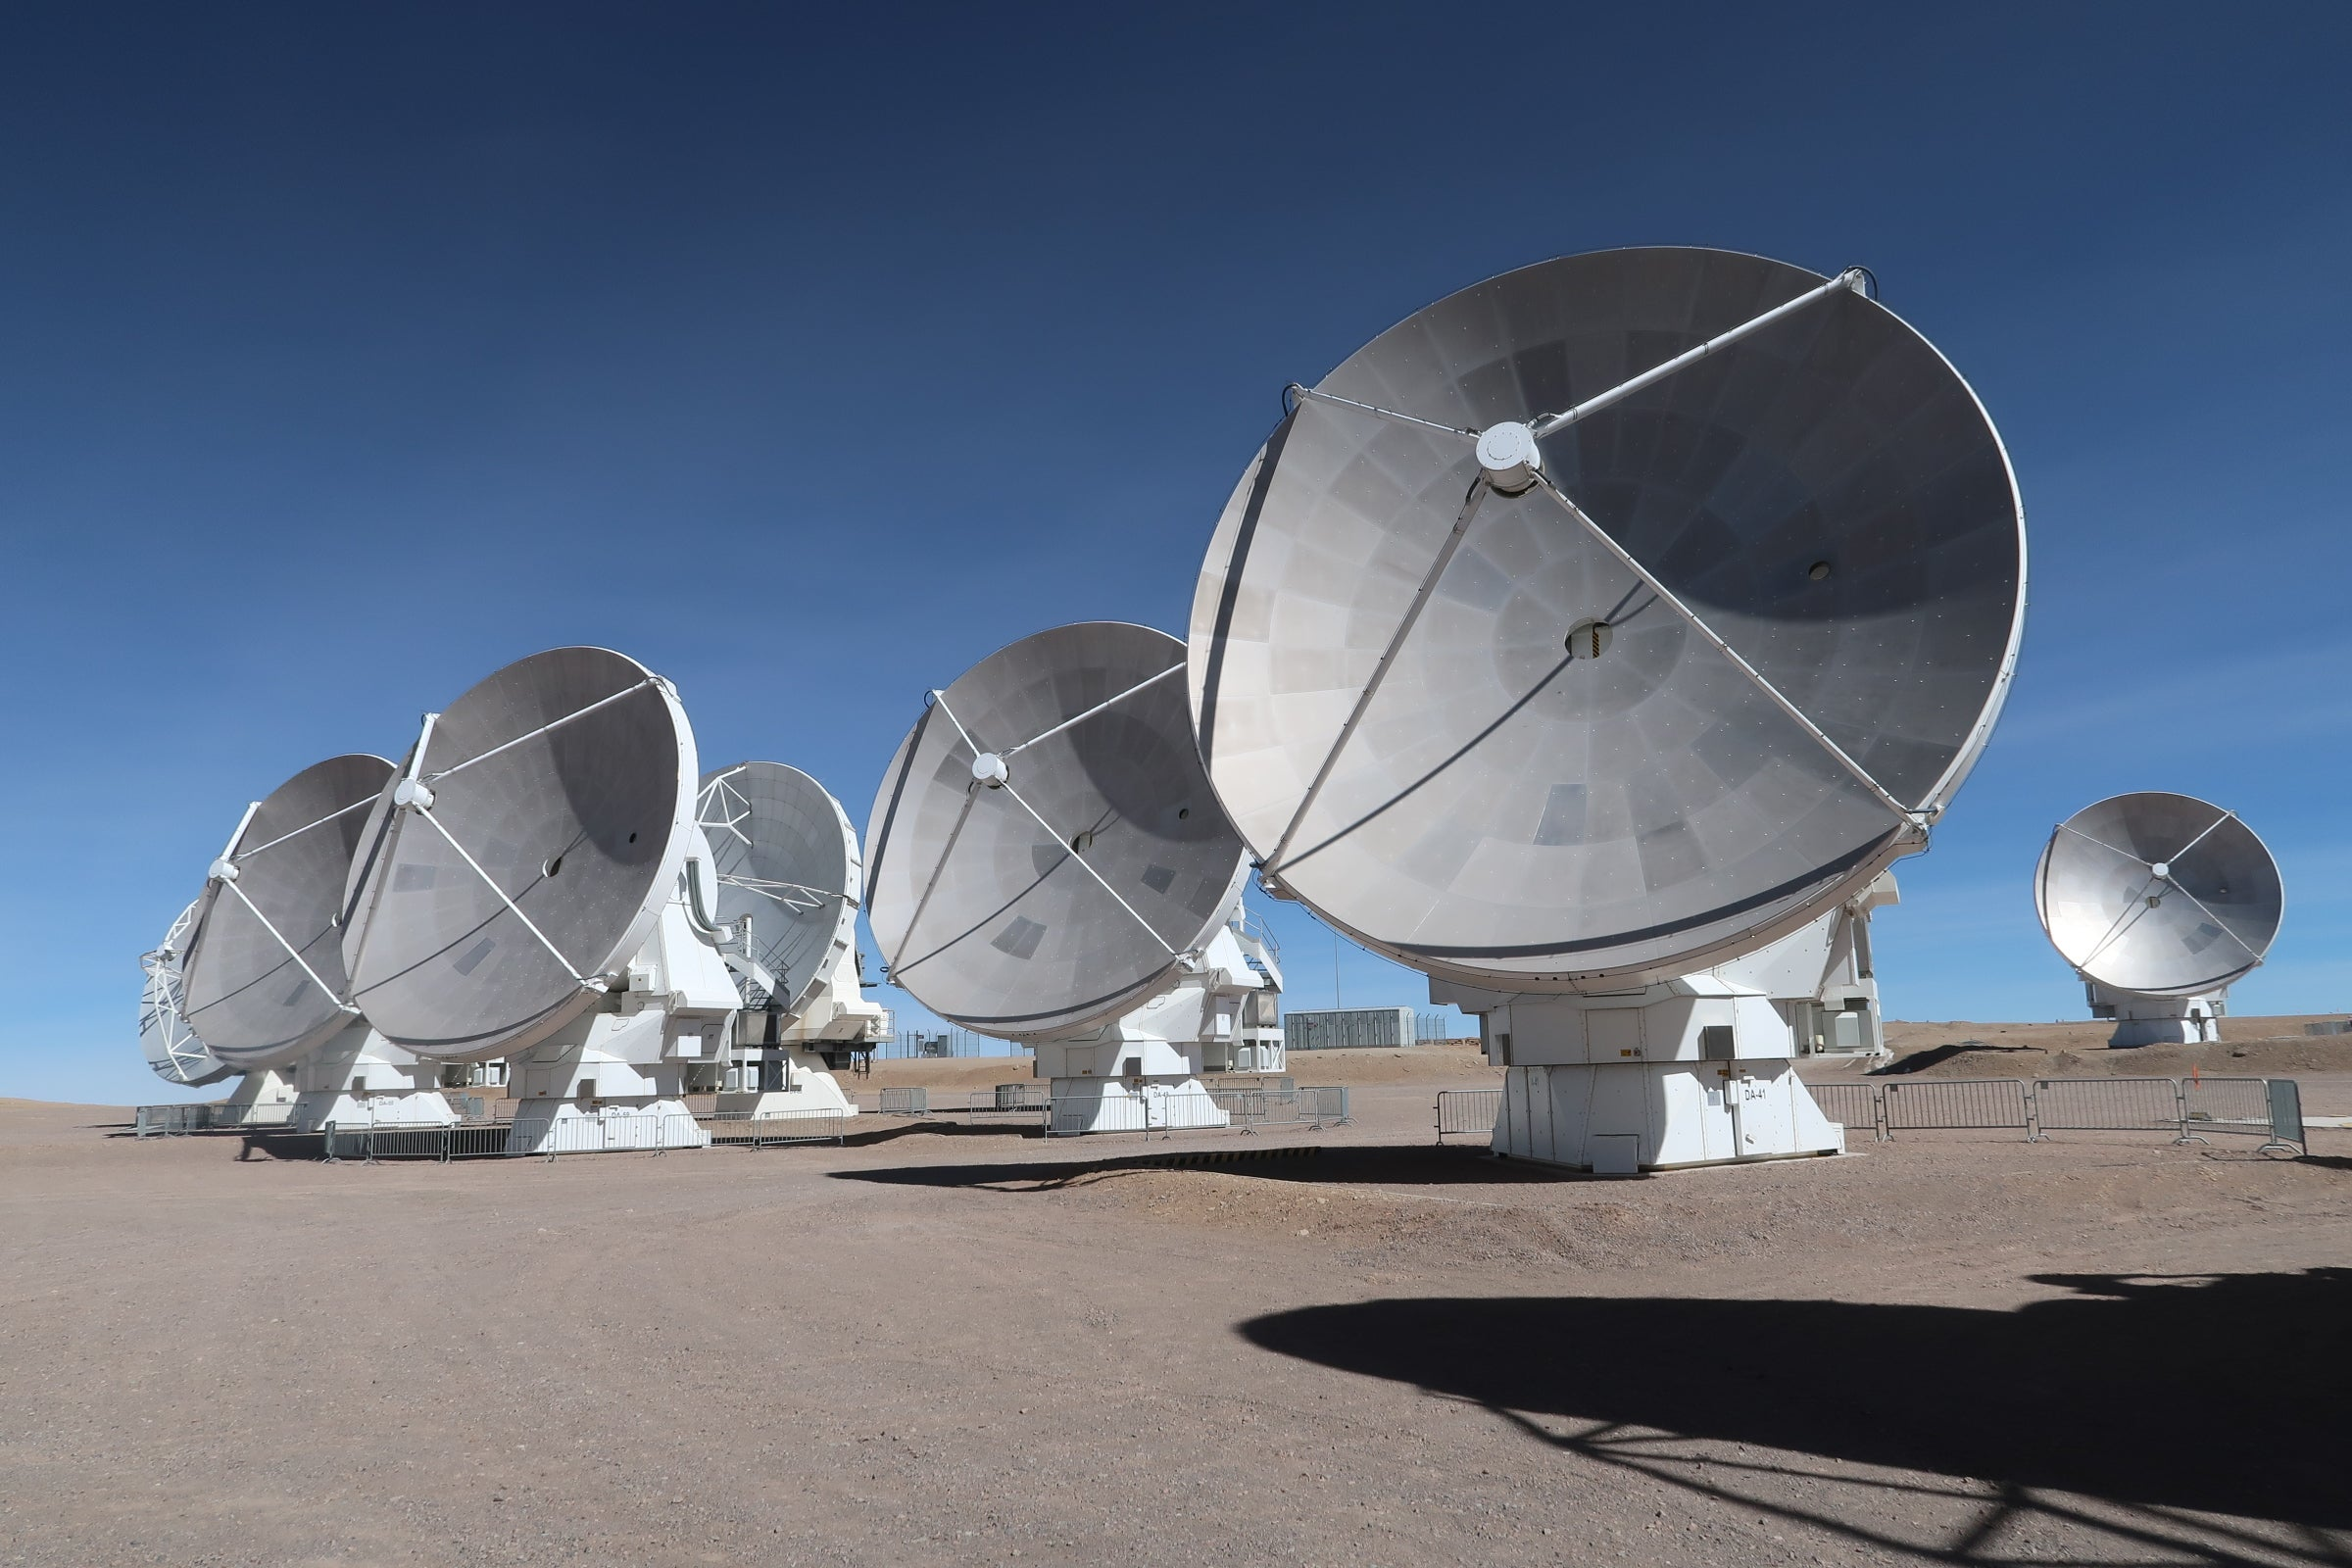 A handful of large dishes point skyward